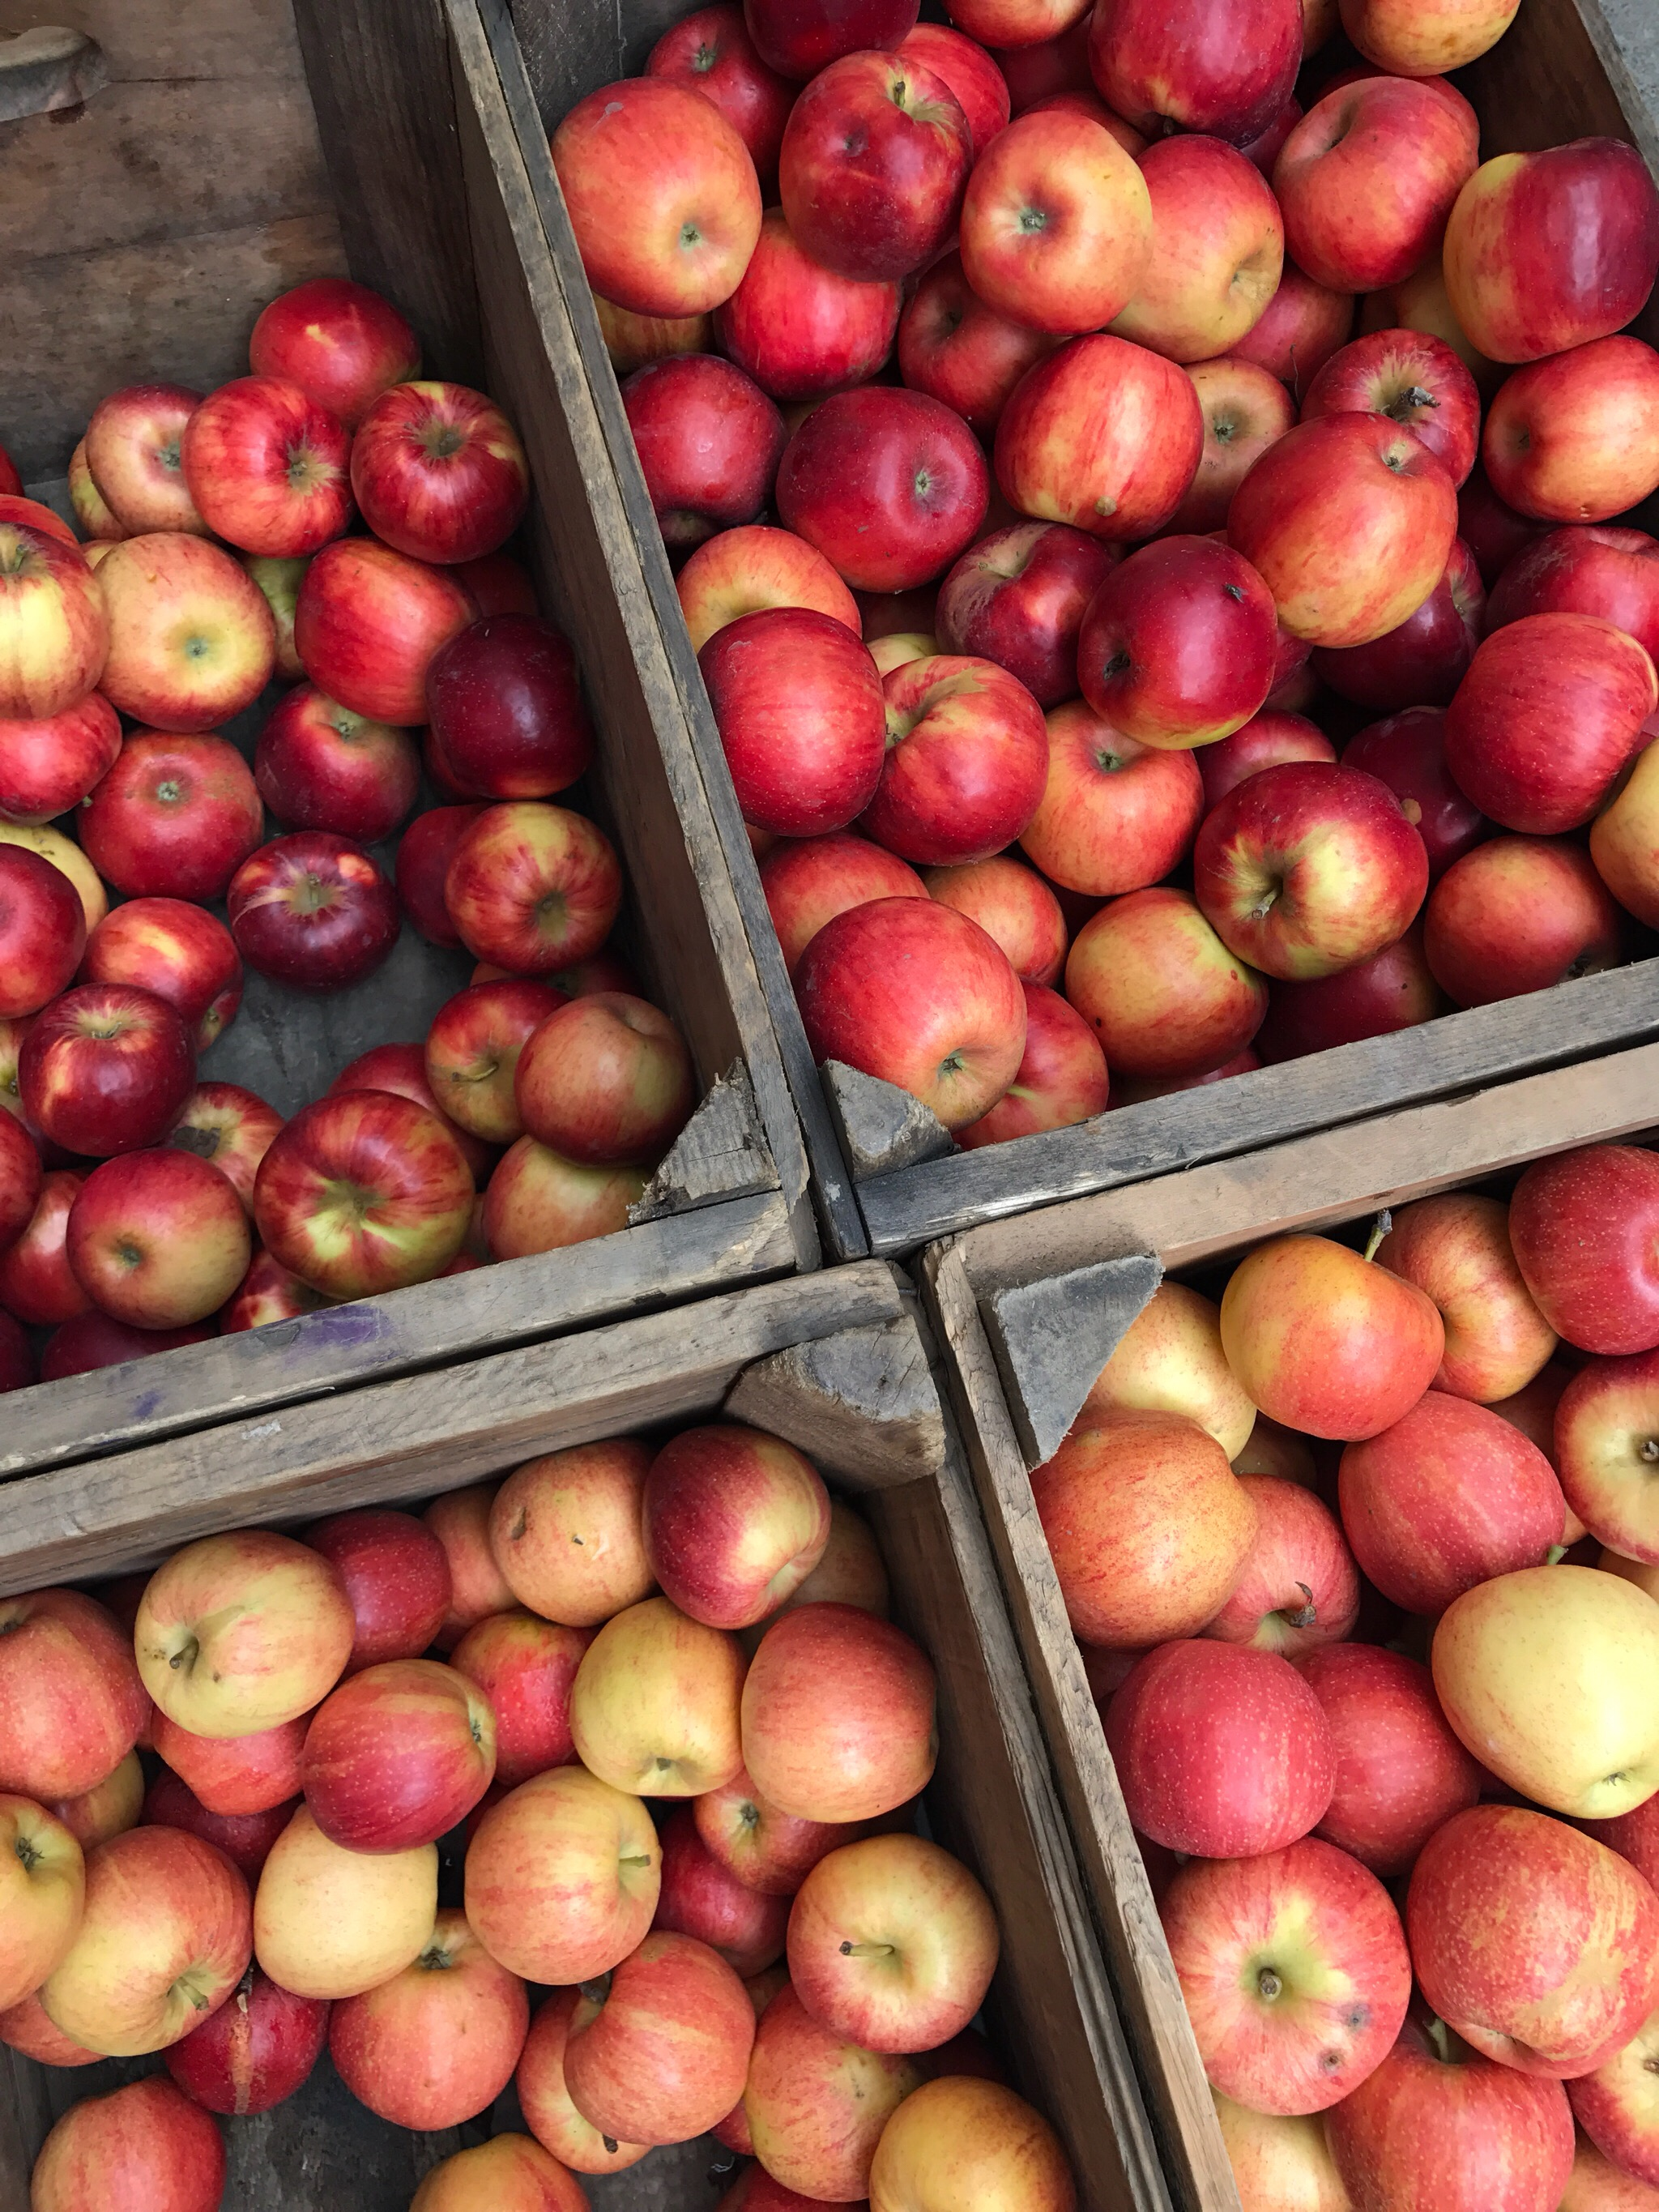 FRESH APPLES (Union Square Farmers Market)